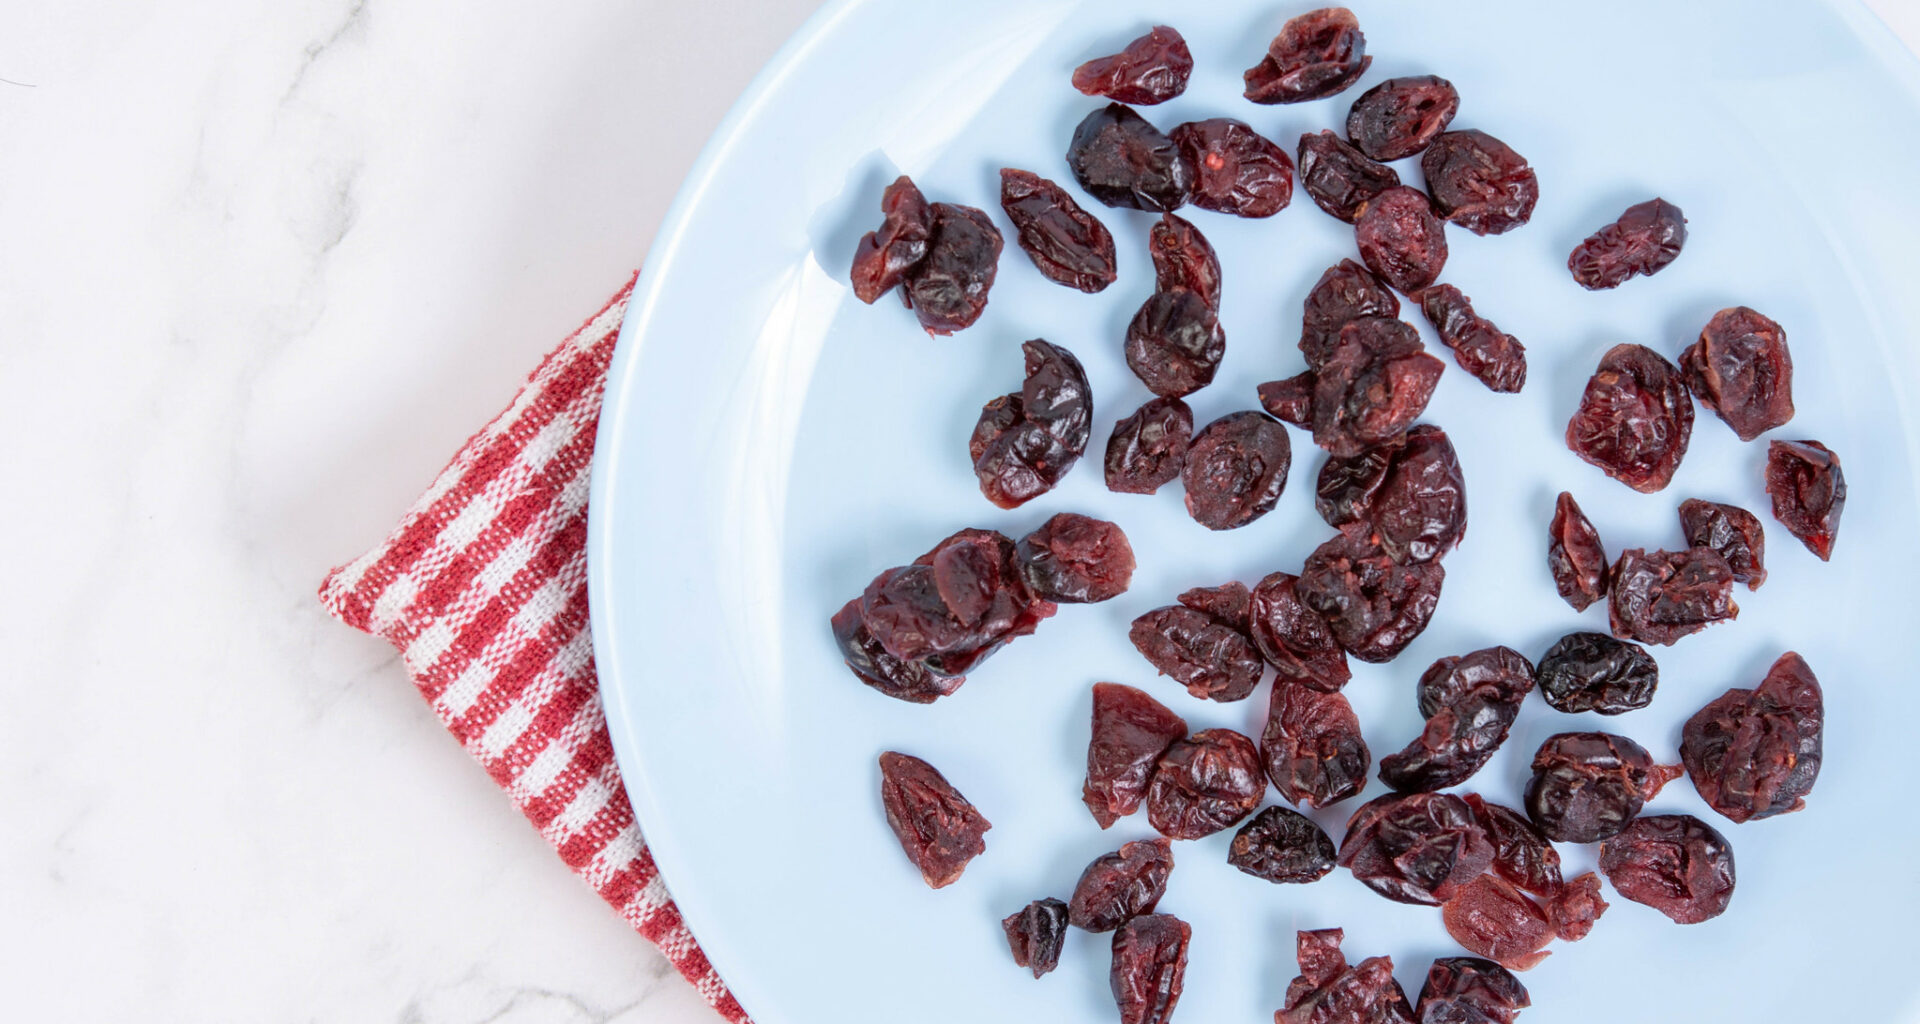 Dried Cranberries on a White Plate